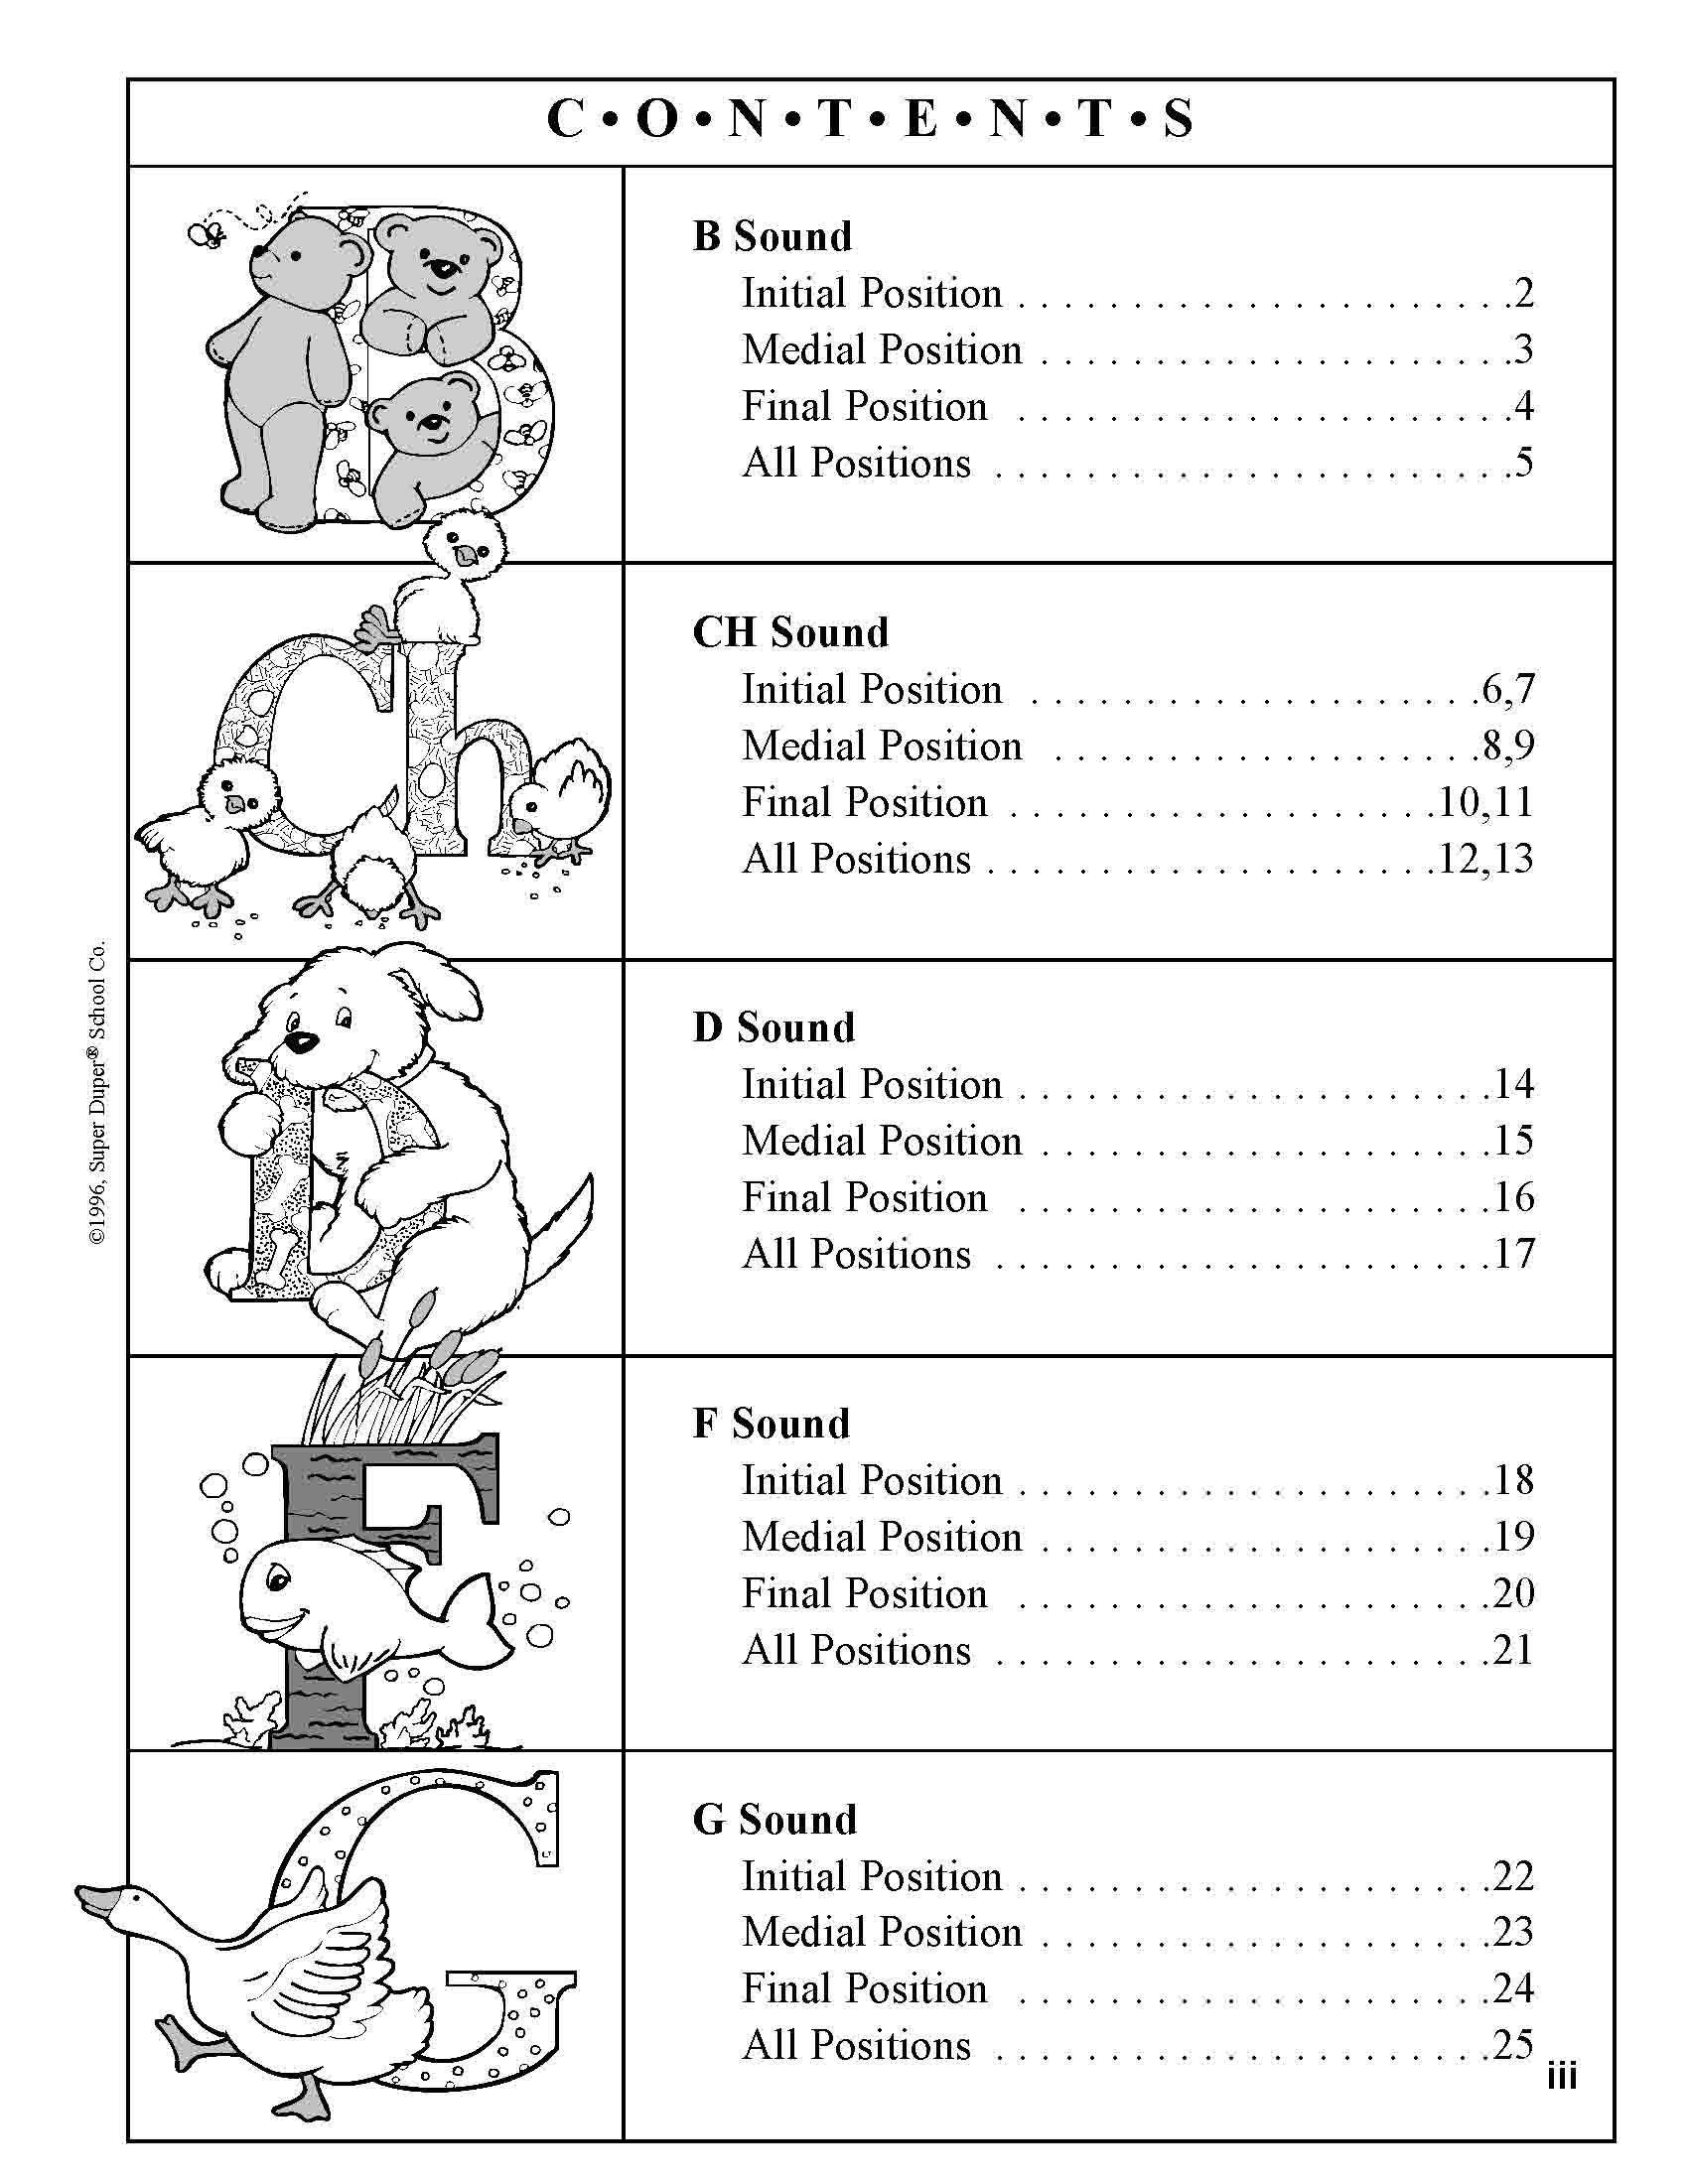 134 Sound-Loaded Scenes for Articulation: 20 Sounds plus Blends Book by  Super Duper Staff (1996) Paperback: Amazon.co.uk: 9781586500542: Books